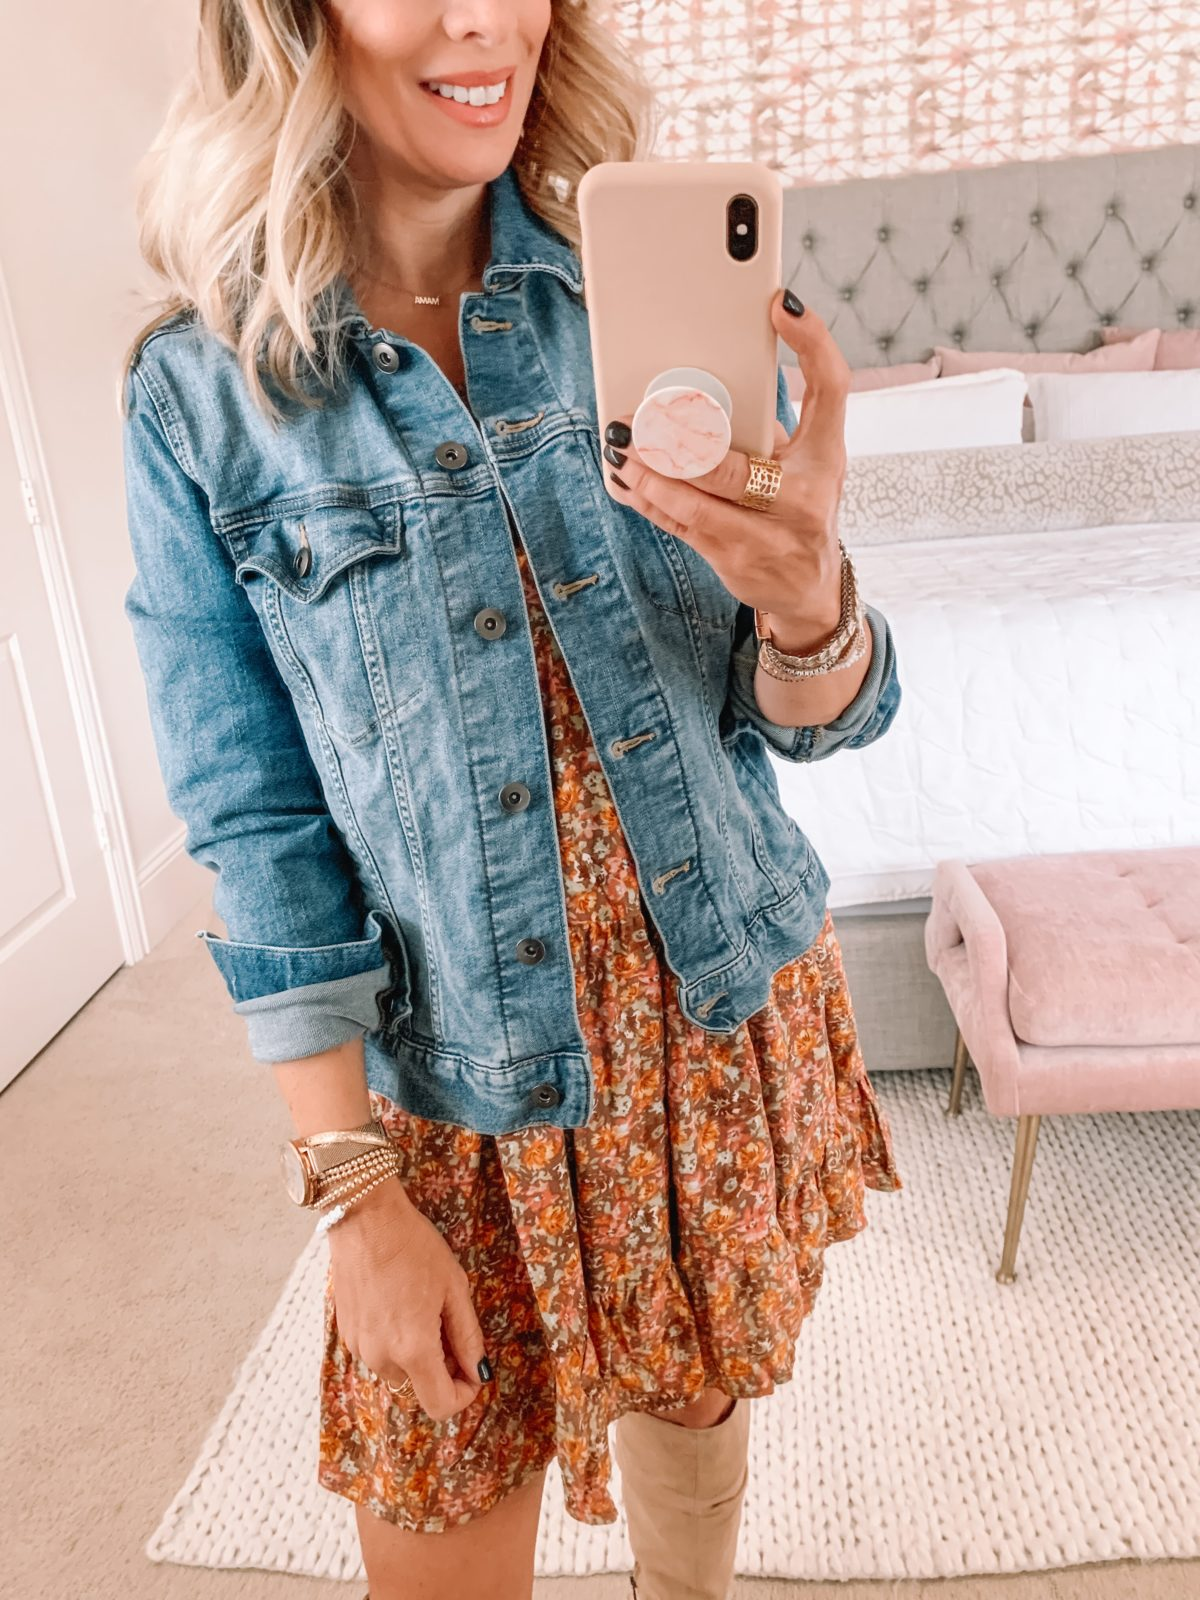 Dressing Room Finds, Target, Denim Jacket, Floral Dress